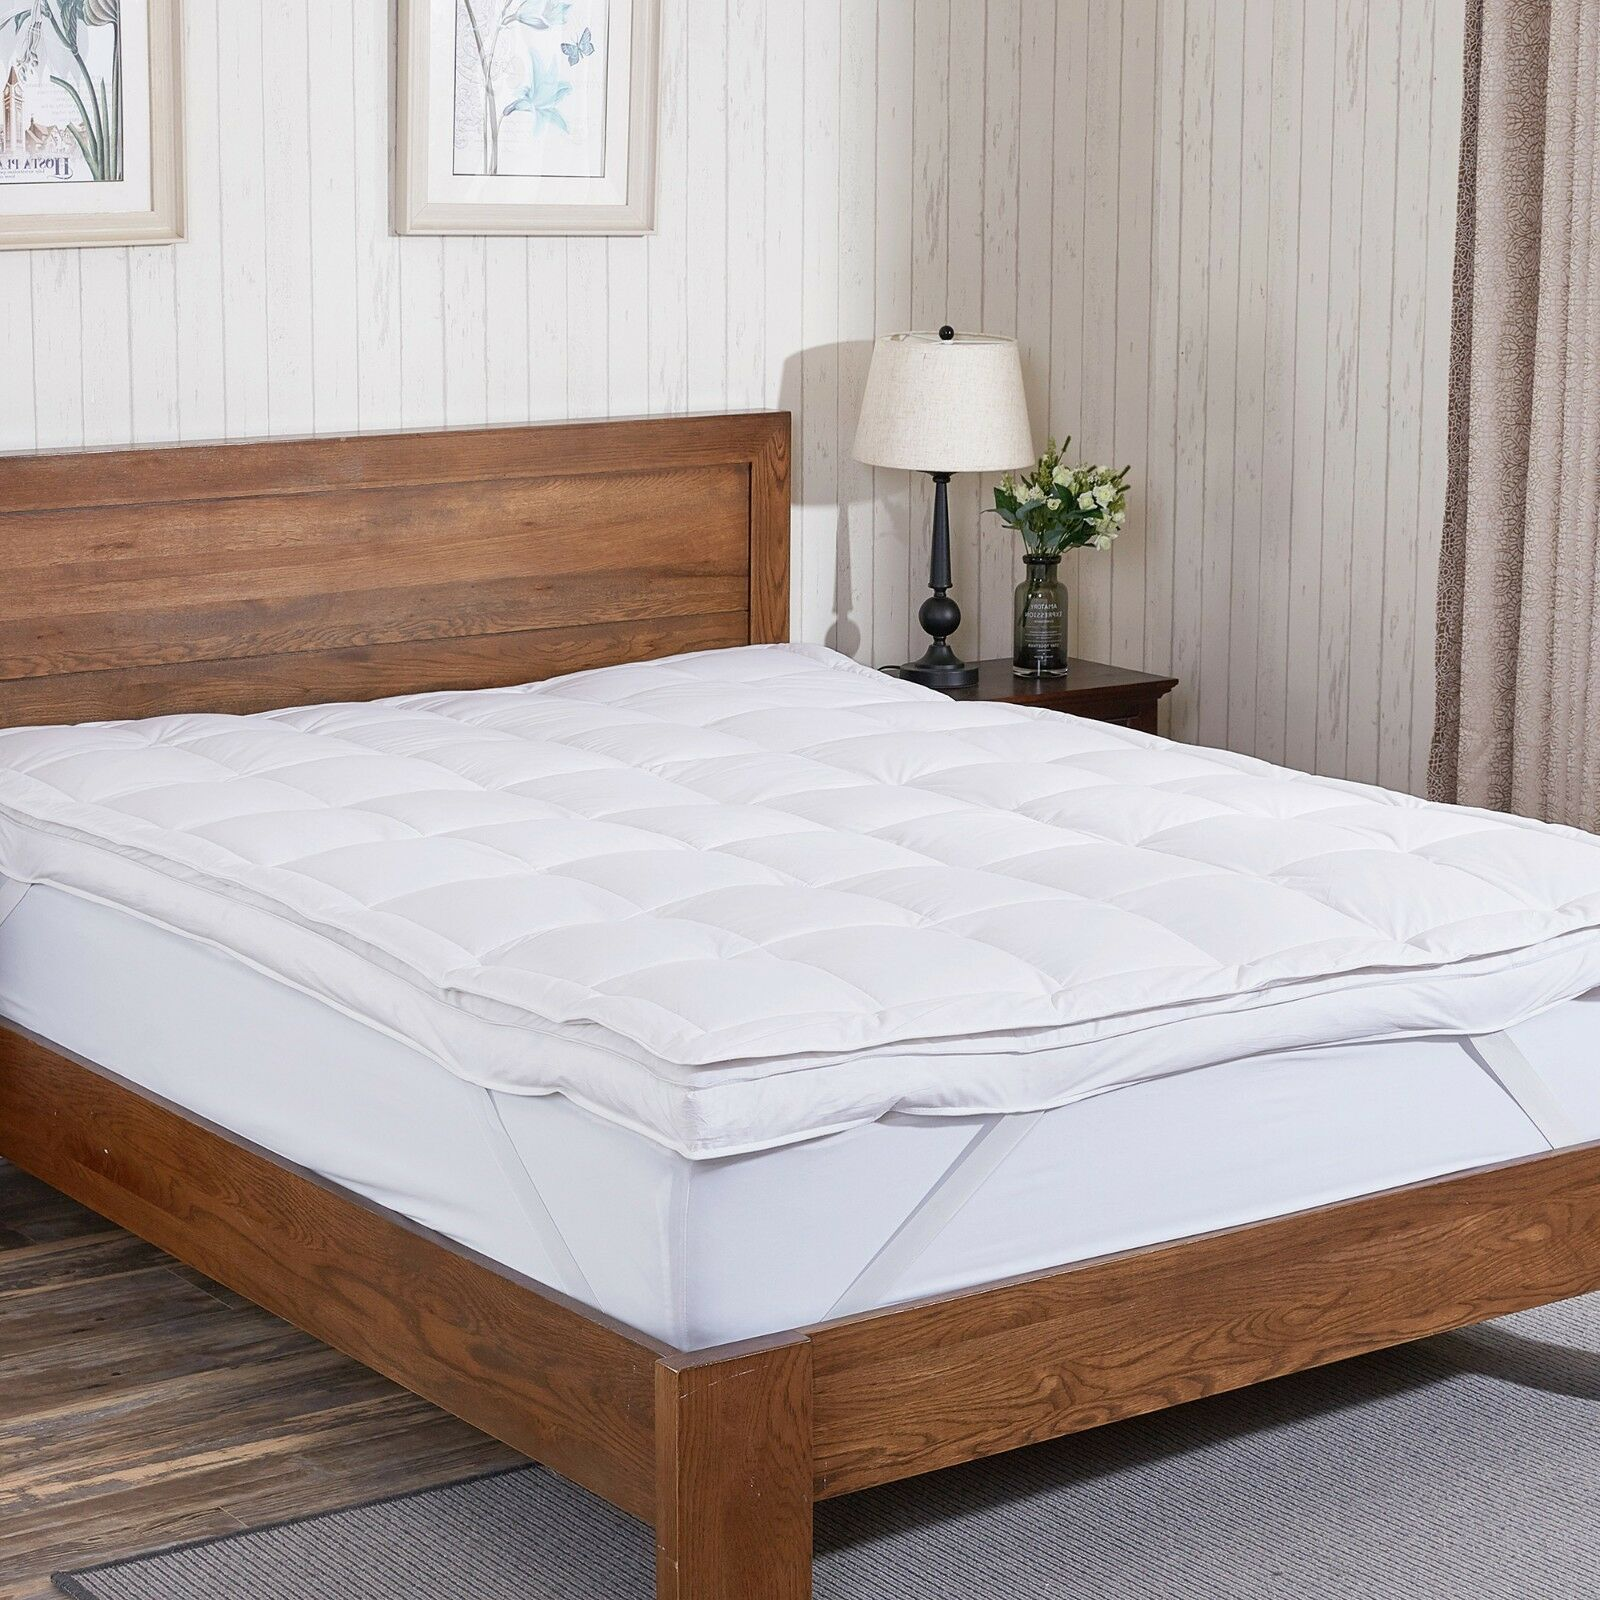 Down And Feather Mattress Topper For Sale Online Ebay